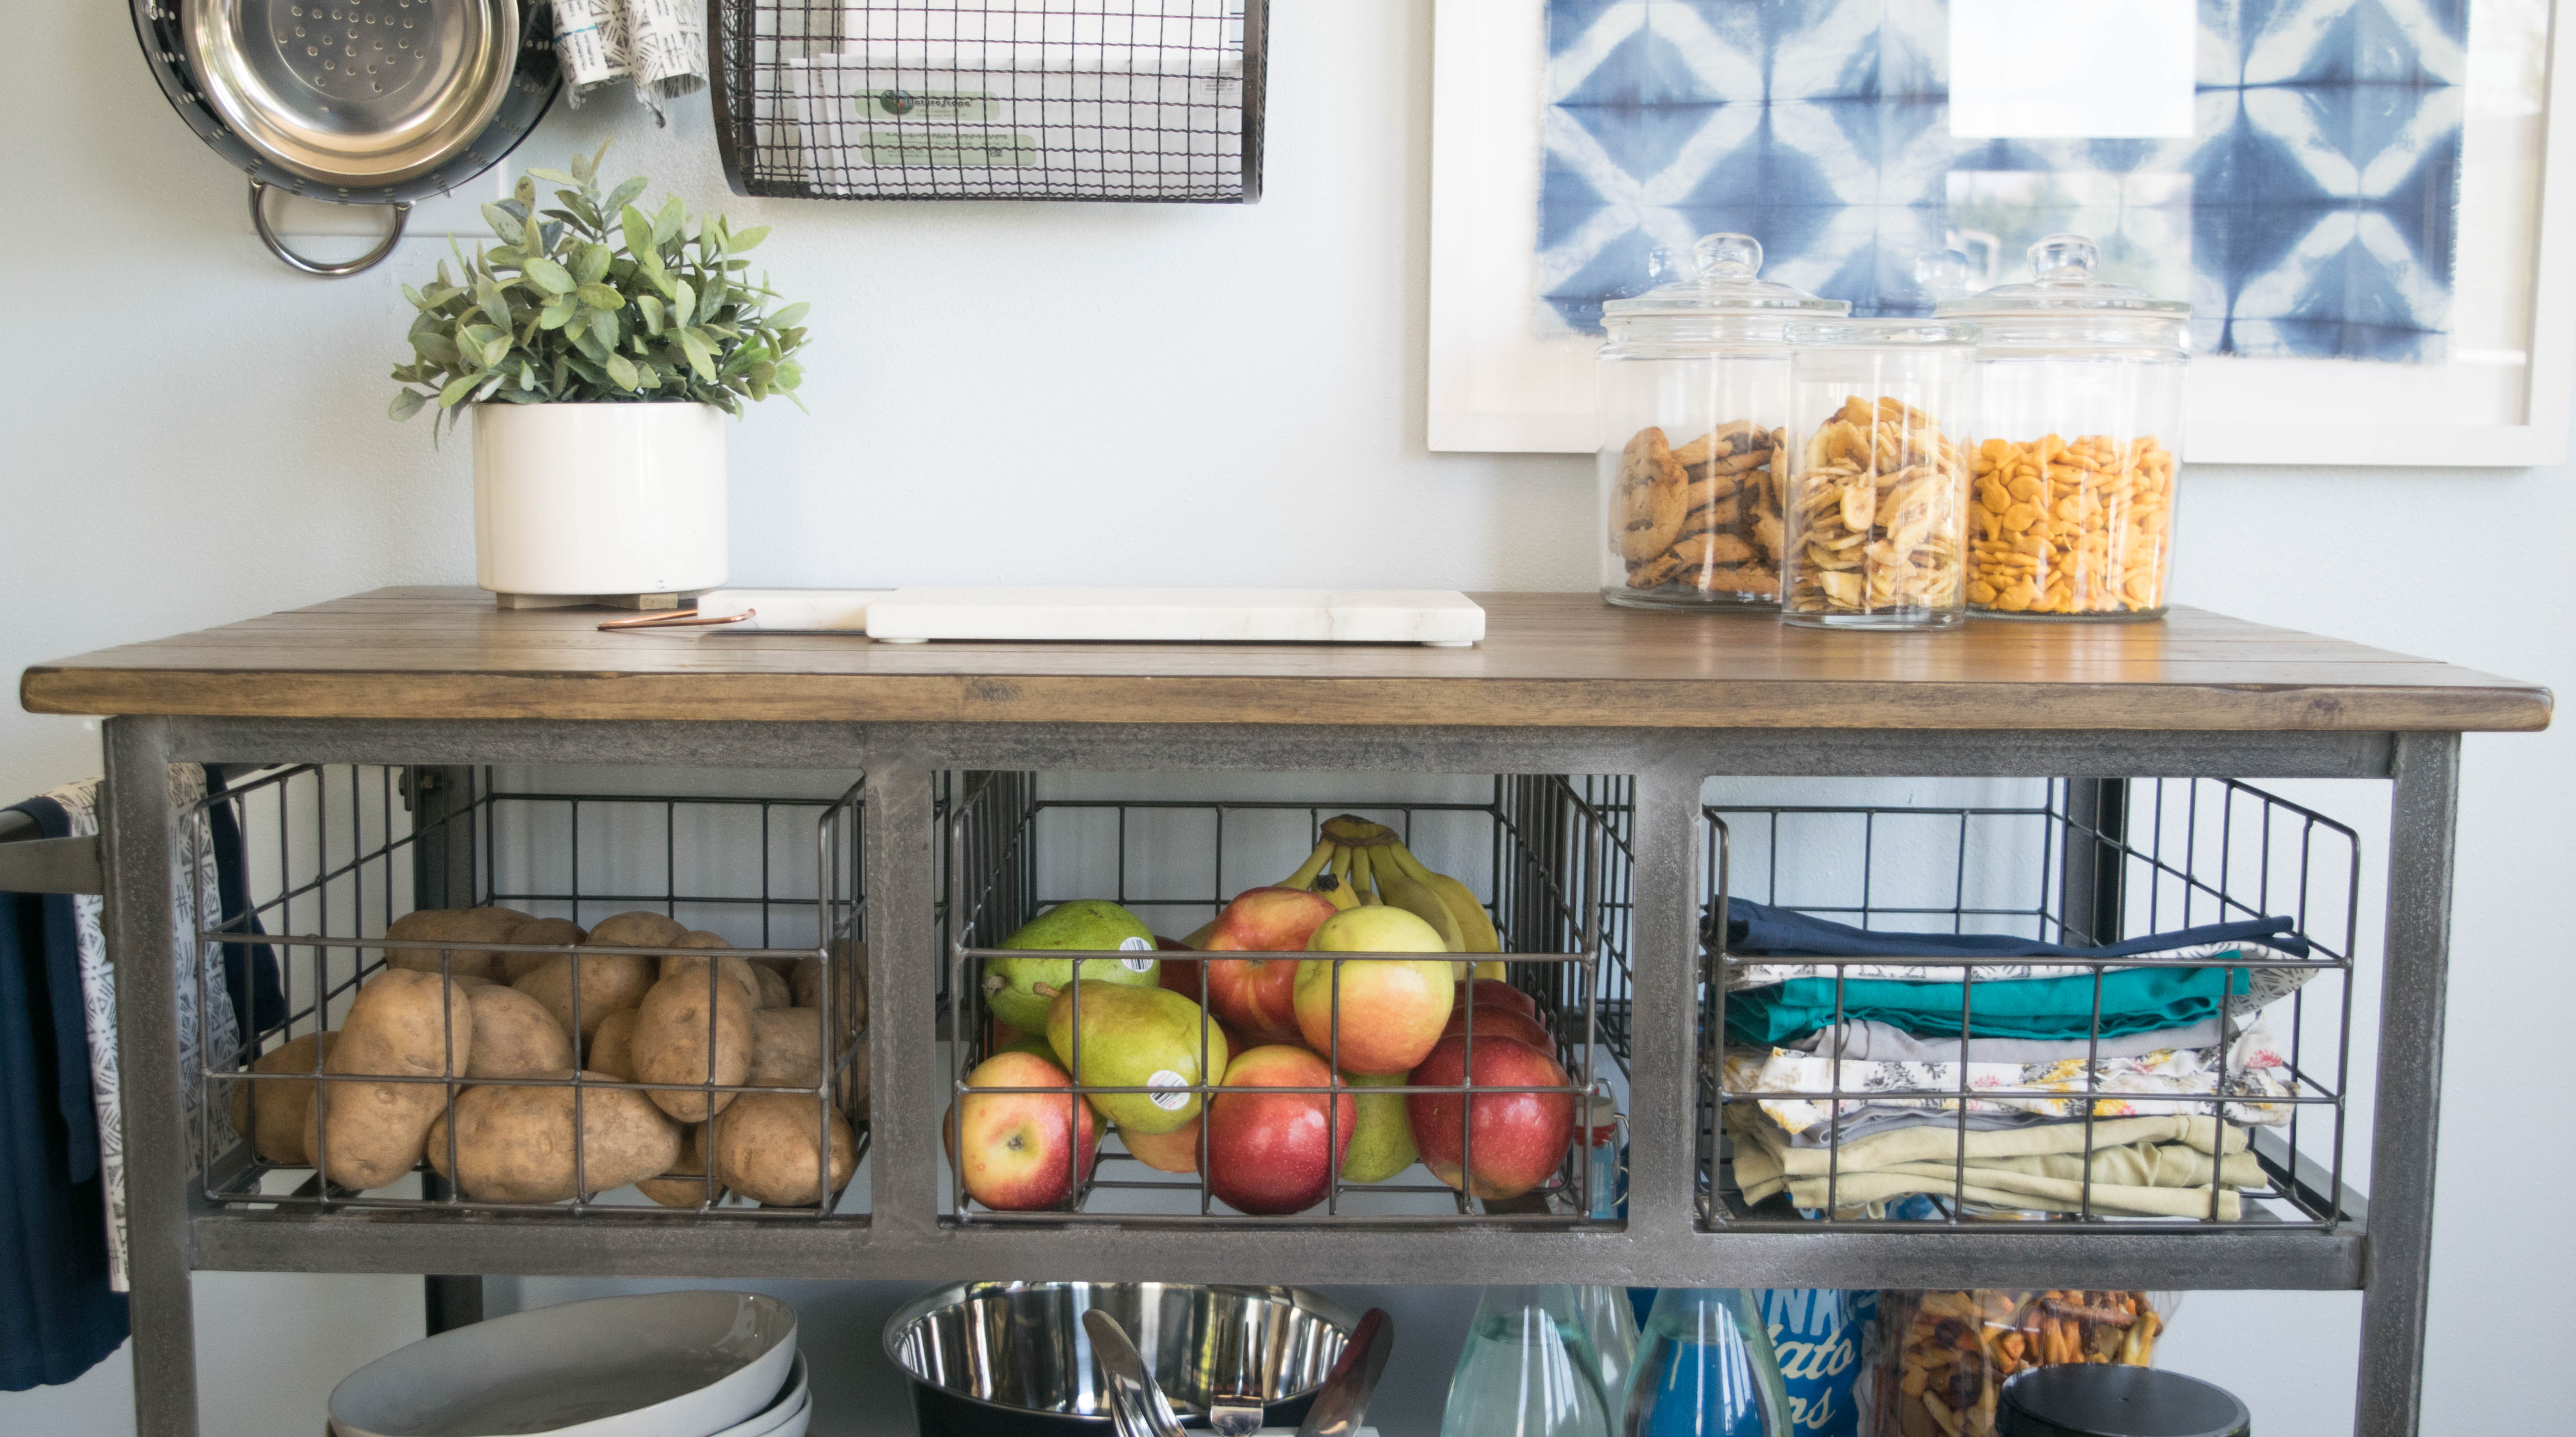 Creative Ways To Store Dishes: Creative Ways To Store Food In Small Kitchen (1 Of 1